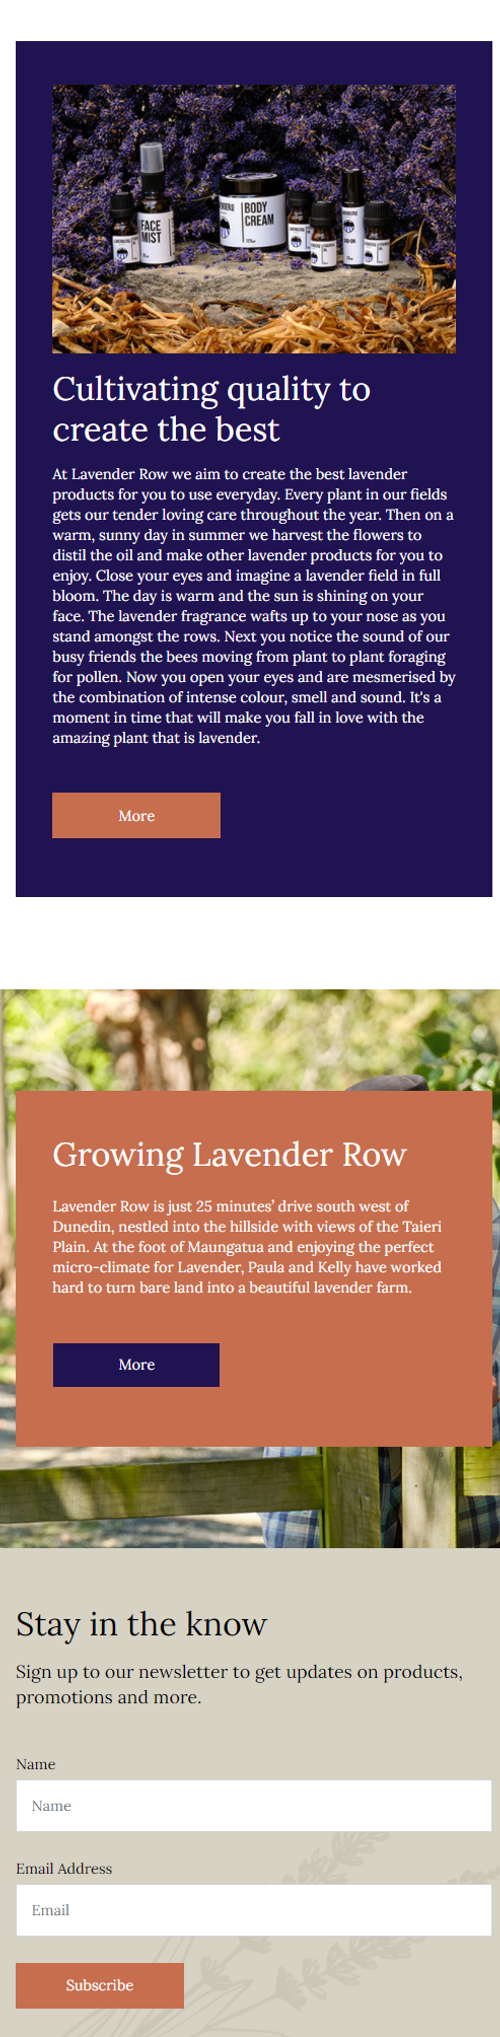 Lavender Row website mobile view by Turboweb